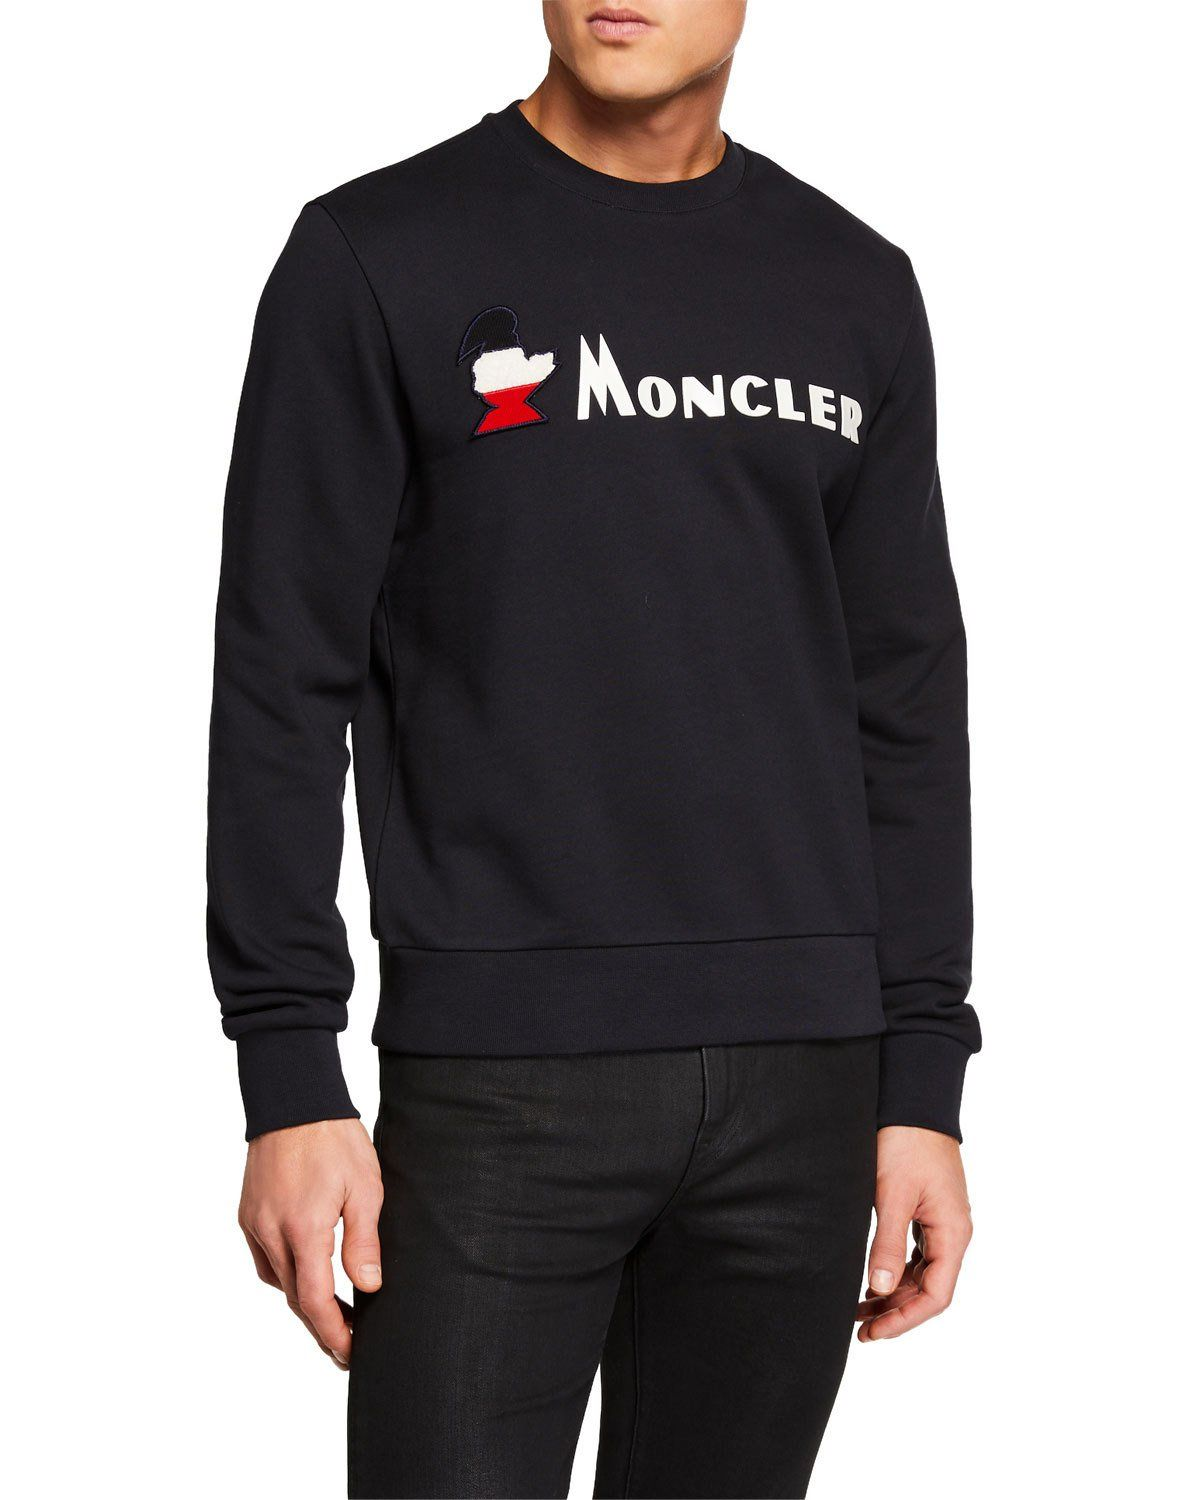 cloth Moncler Maglia Girocollo Shirt Sleeve Men's moncler Long WSS0qrRvw